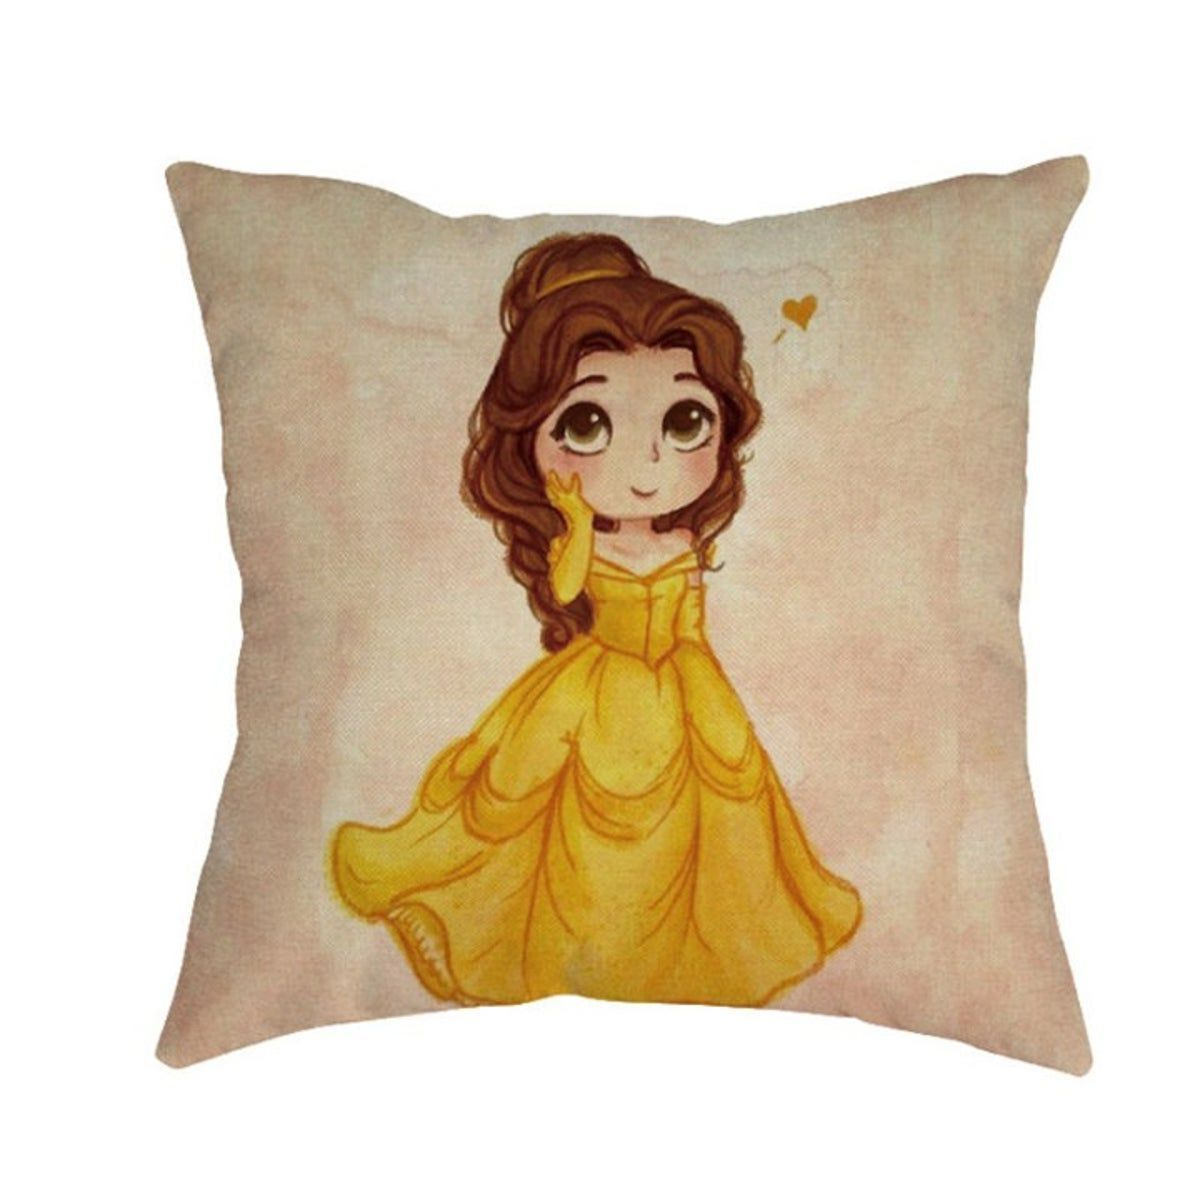 Princess Belle Beauty Amp The Beast Disney Disneyrooms Brand New Package Sealed Pillow Case Princess Cartoon Princess Pillow Disney Beauty And The Beast